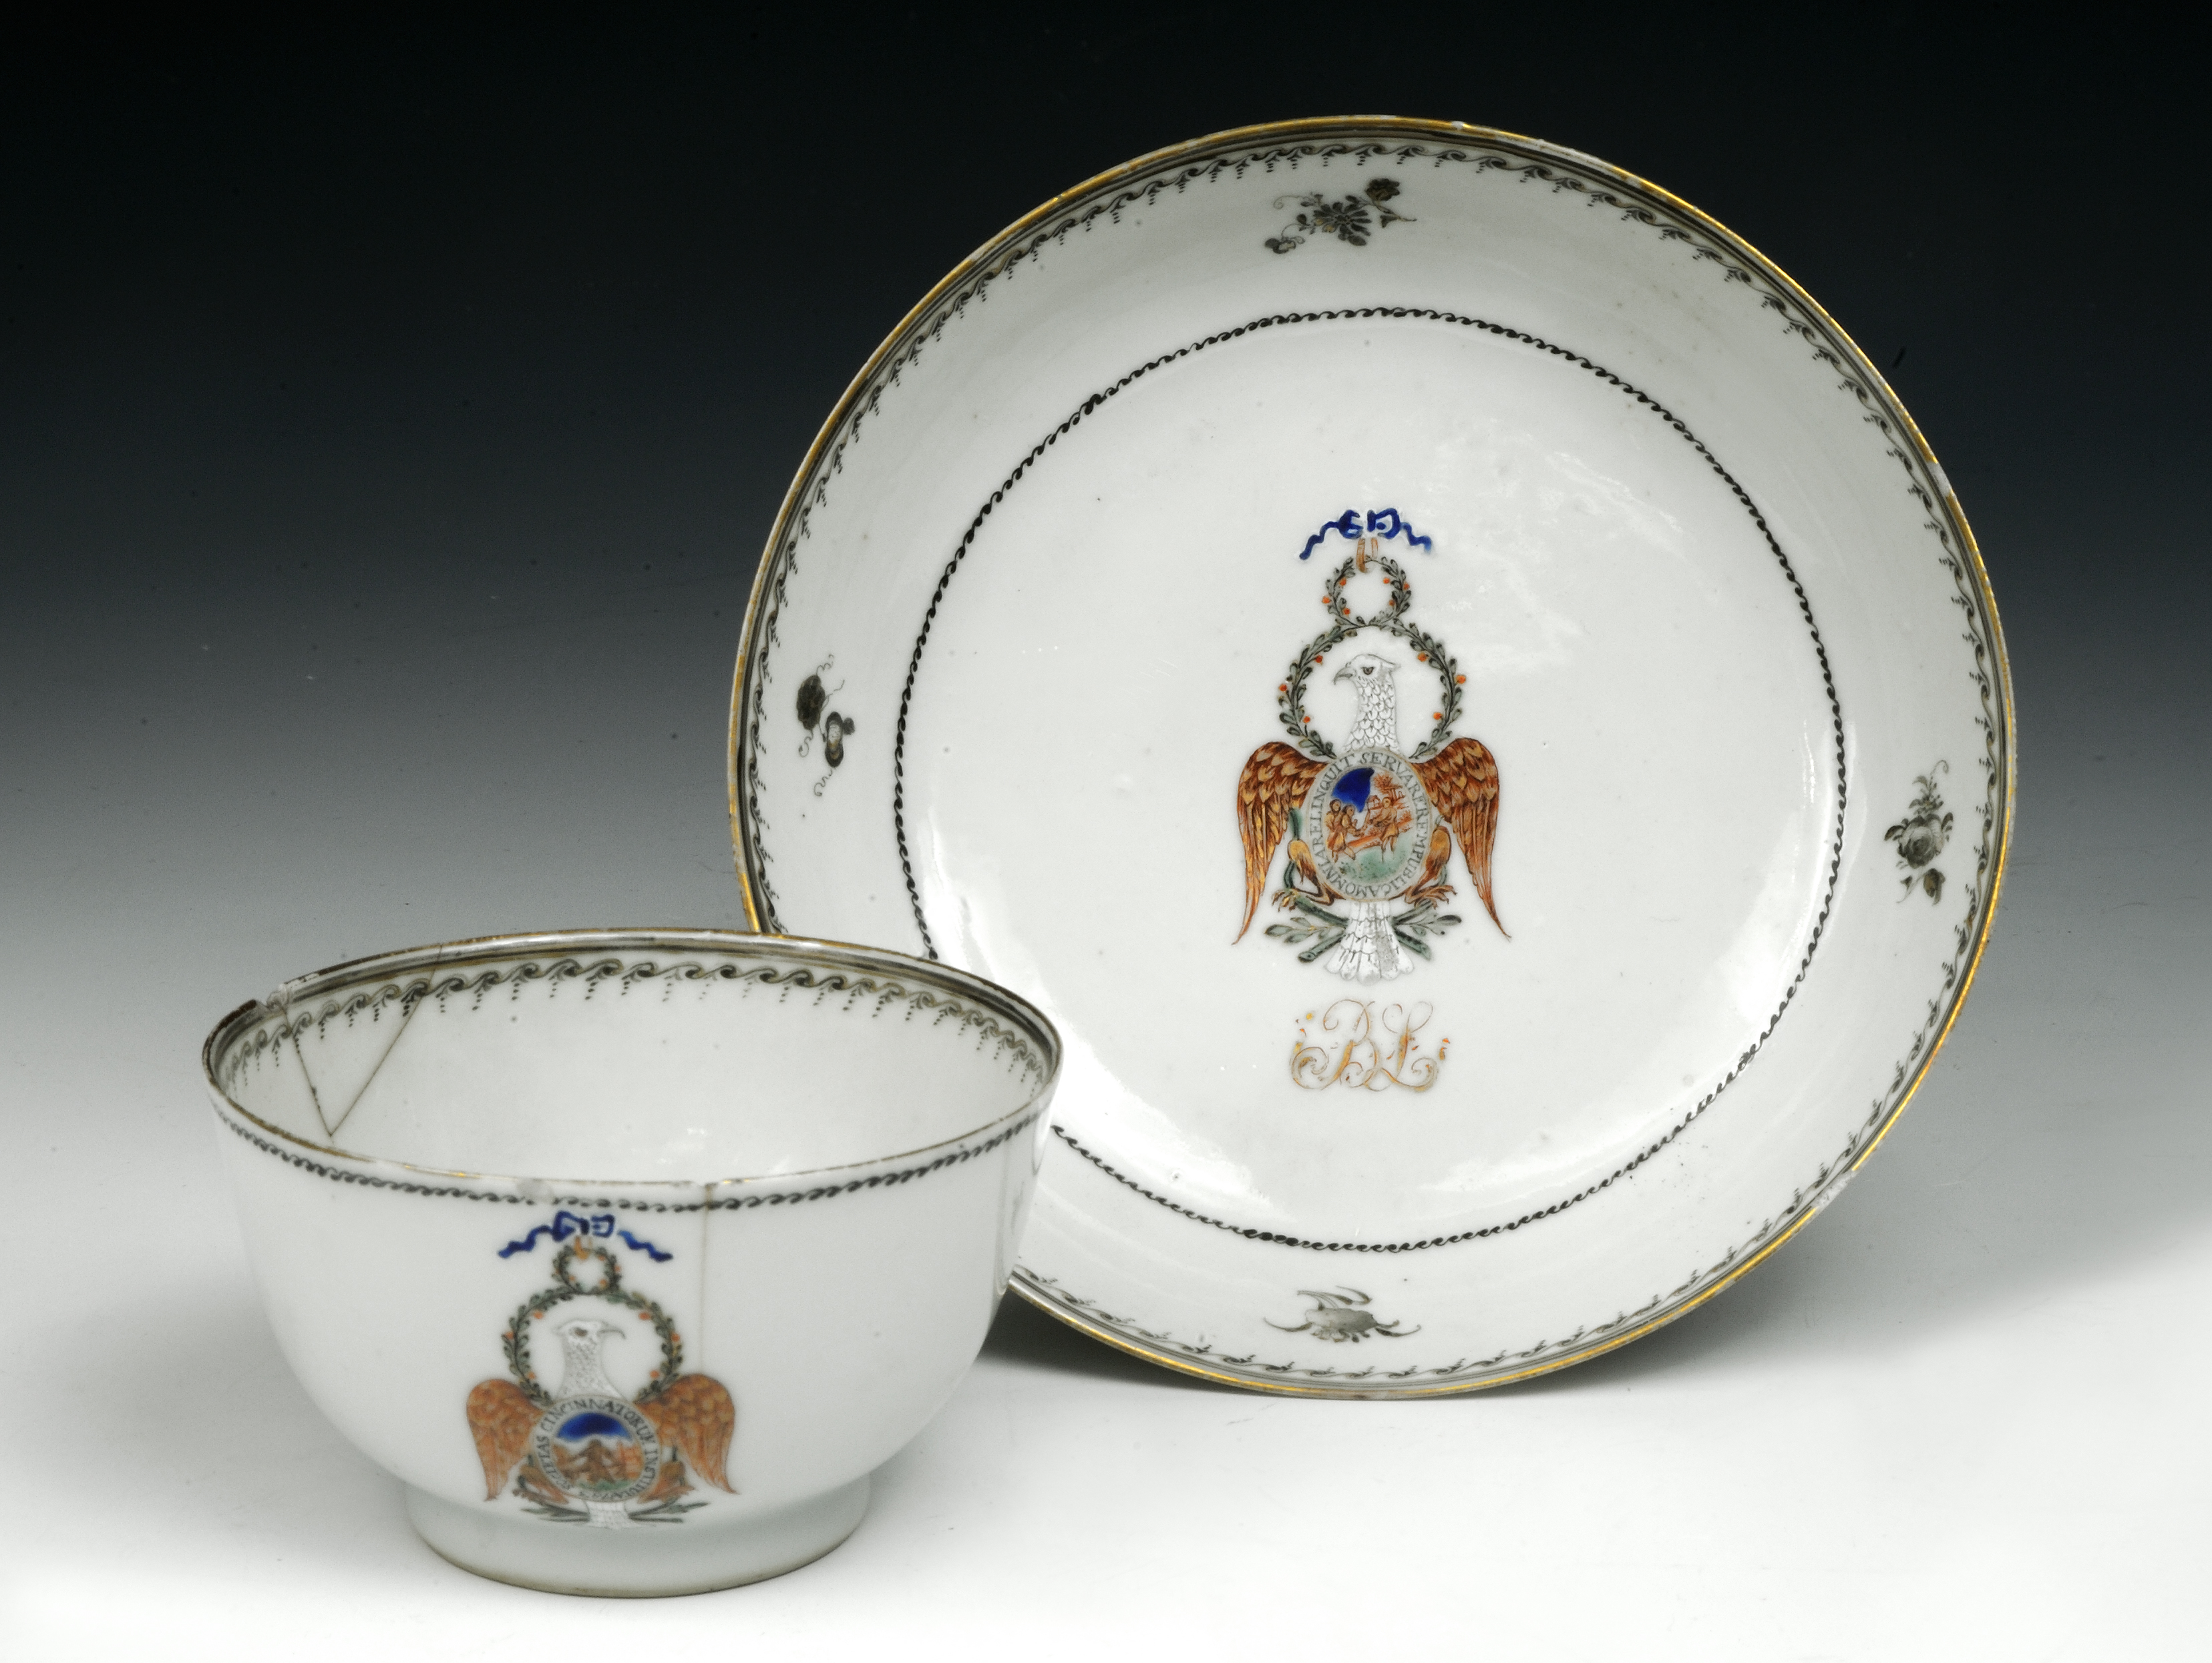 Society of the Cincinnati teacup and saucer owned by Benjamin Lincoln, ca. 1790